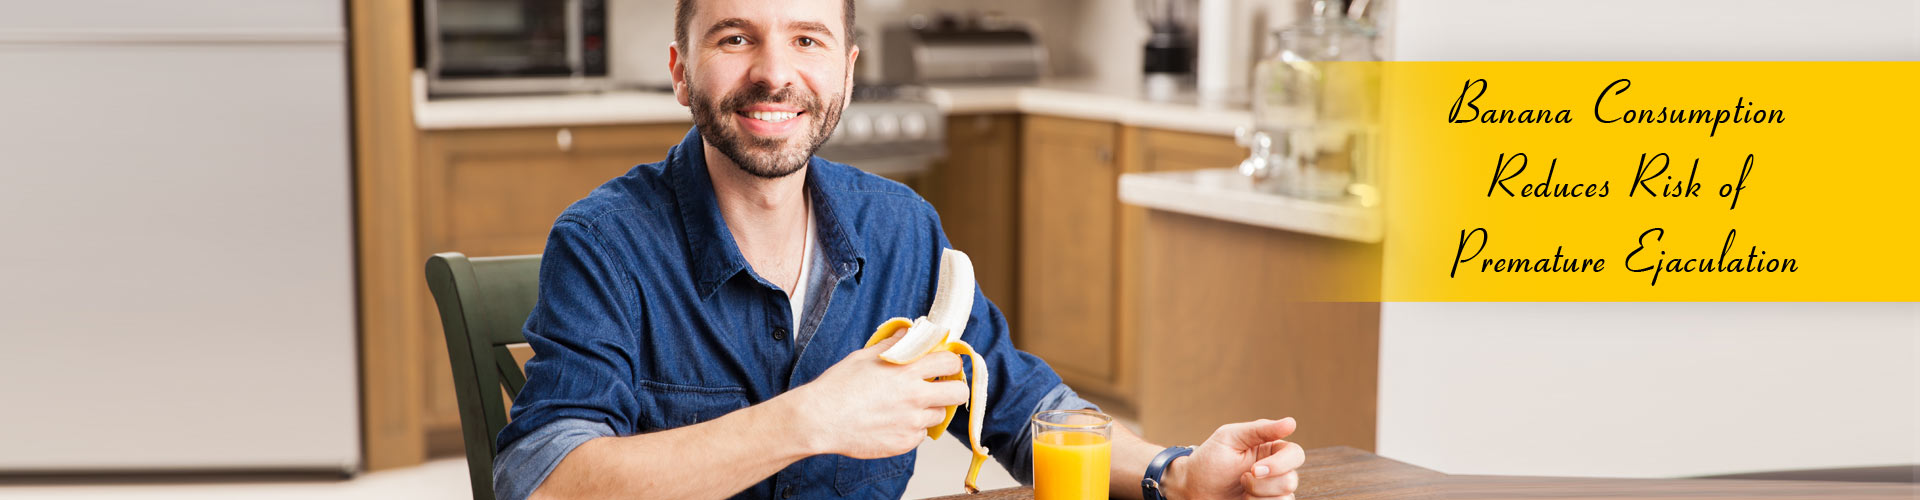 Top 10 Foods that Help Prevent Premature Ejaculation - Slide Show